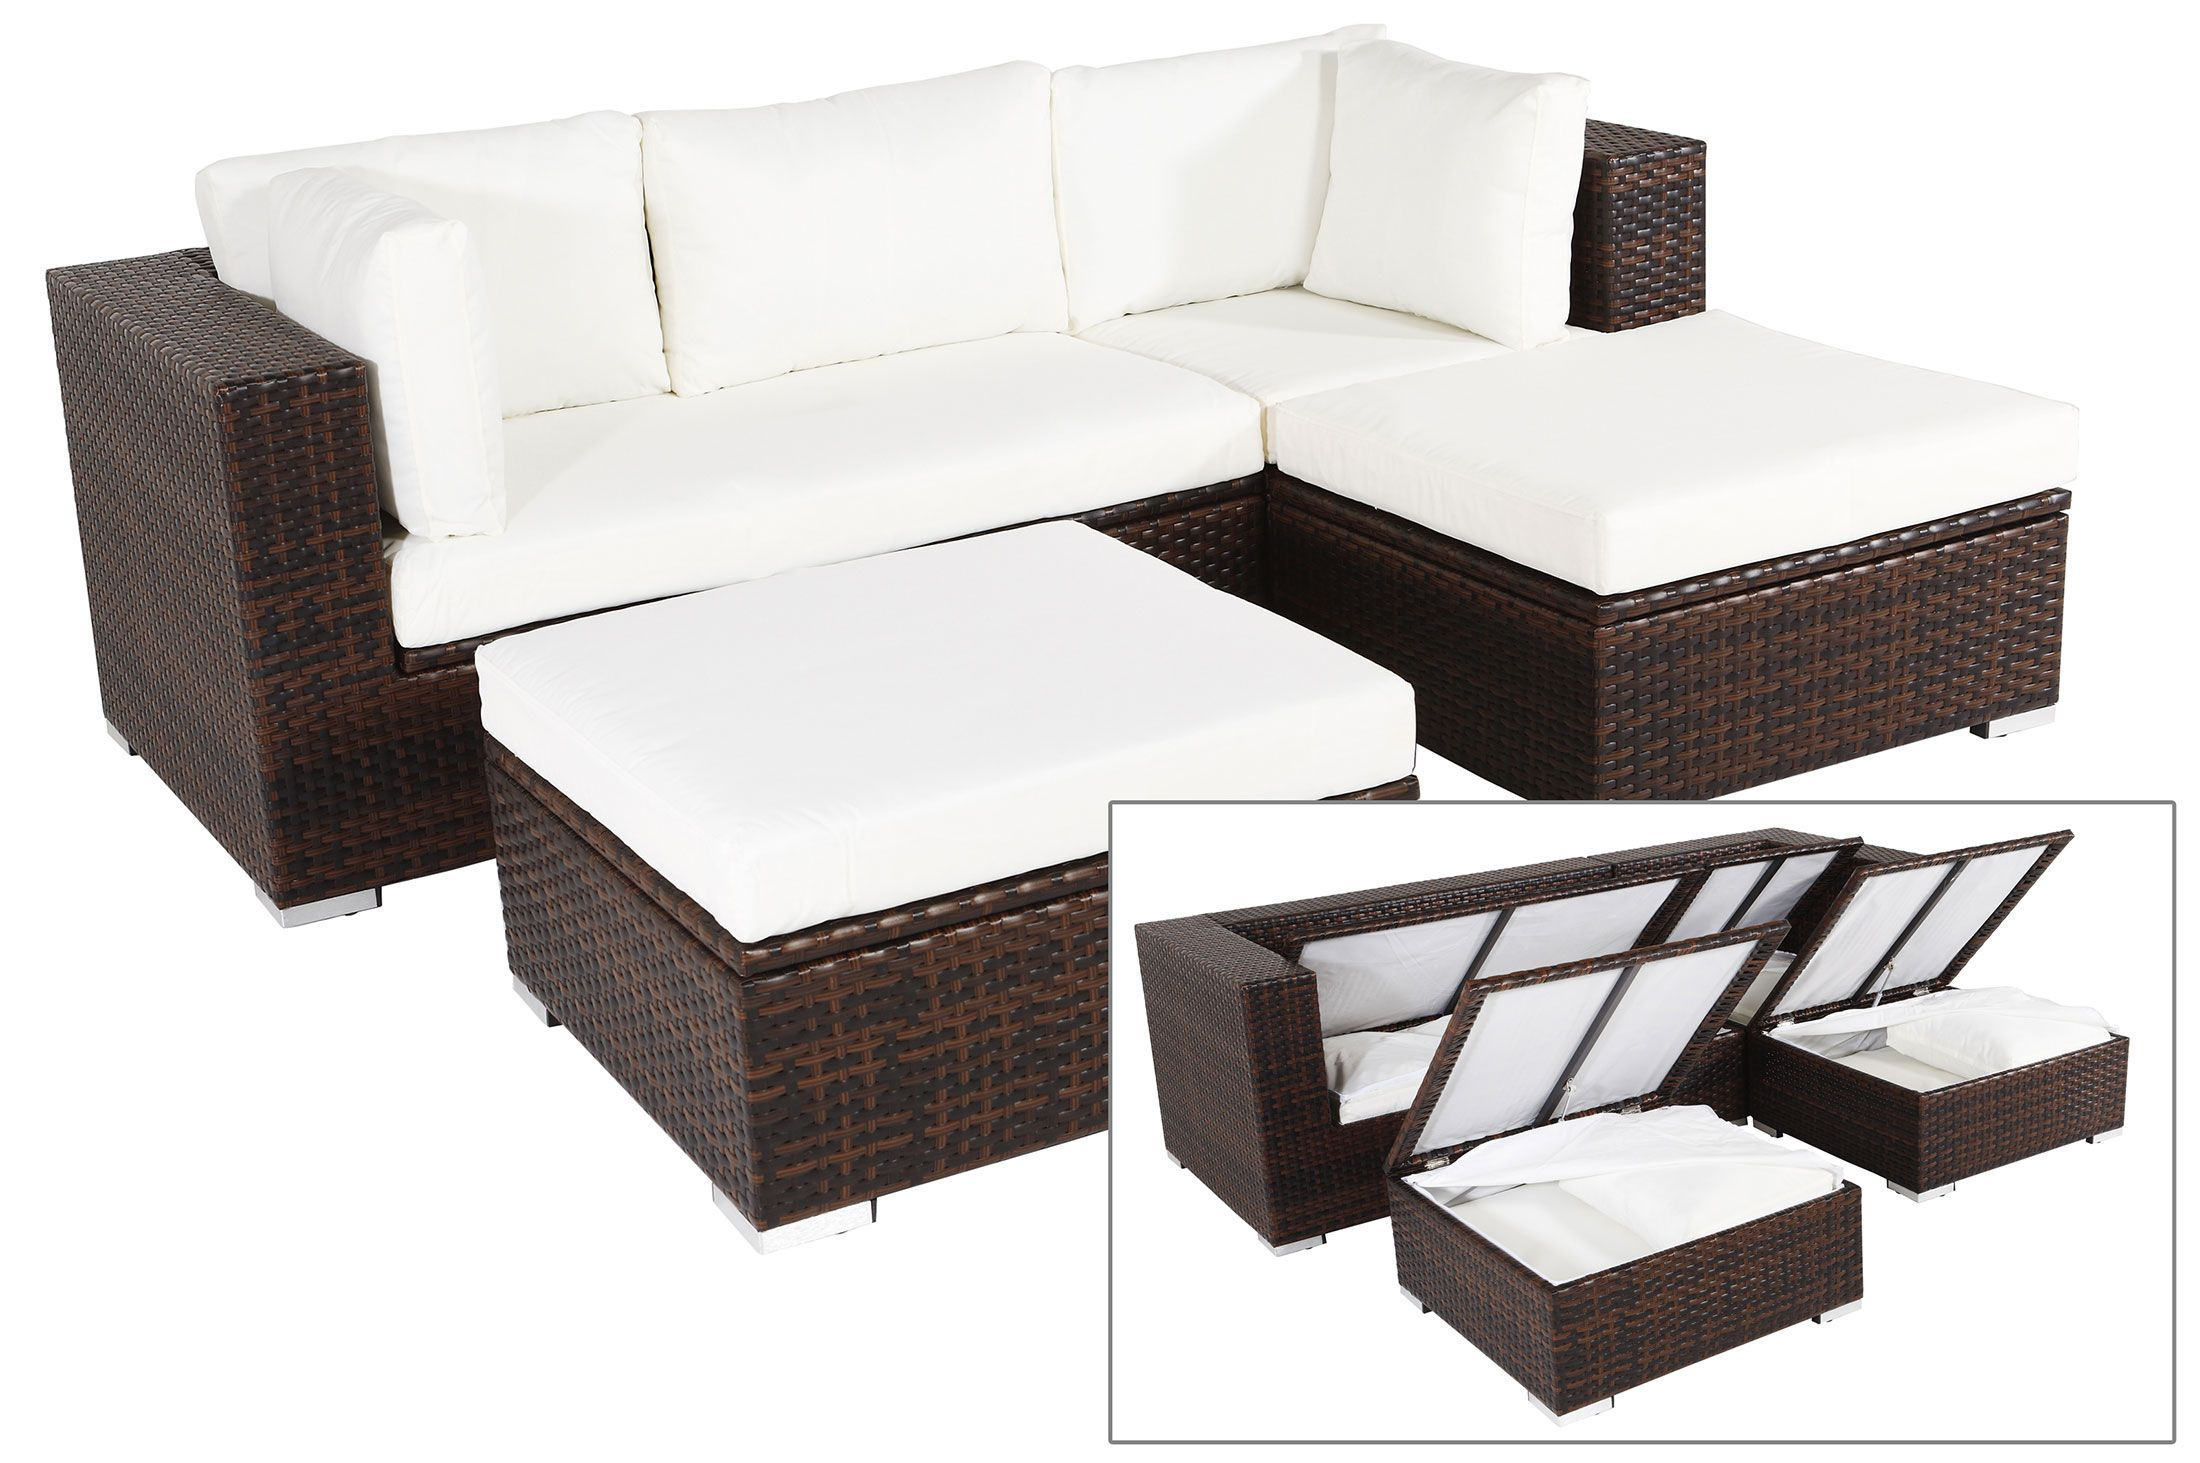 Gartenmbel Rattan Set Finest Perfekt Set Gartenmbel Sets With